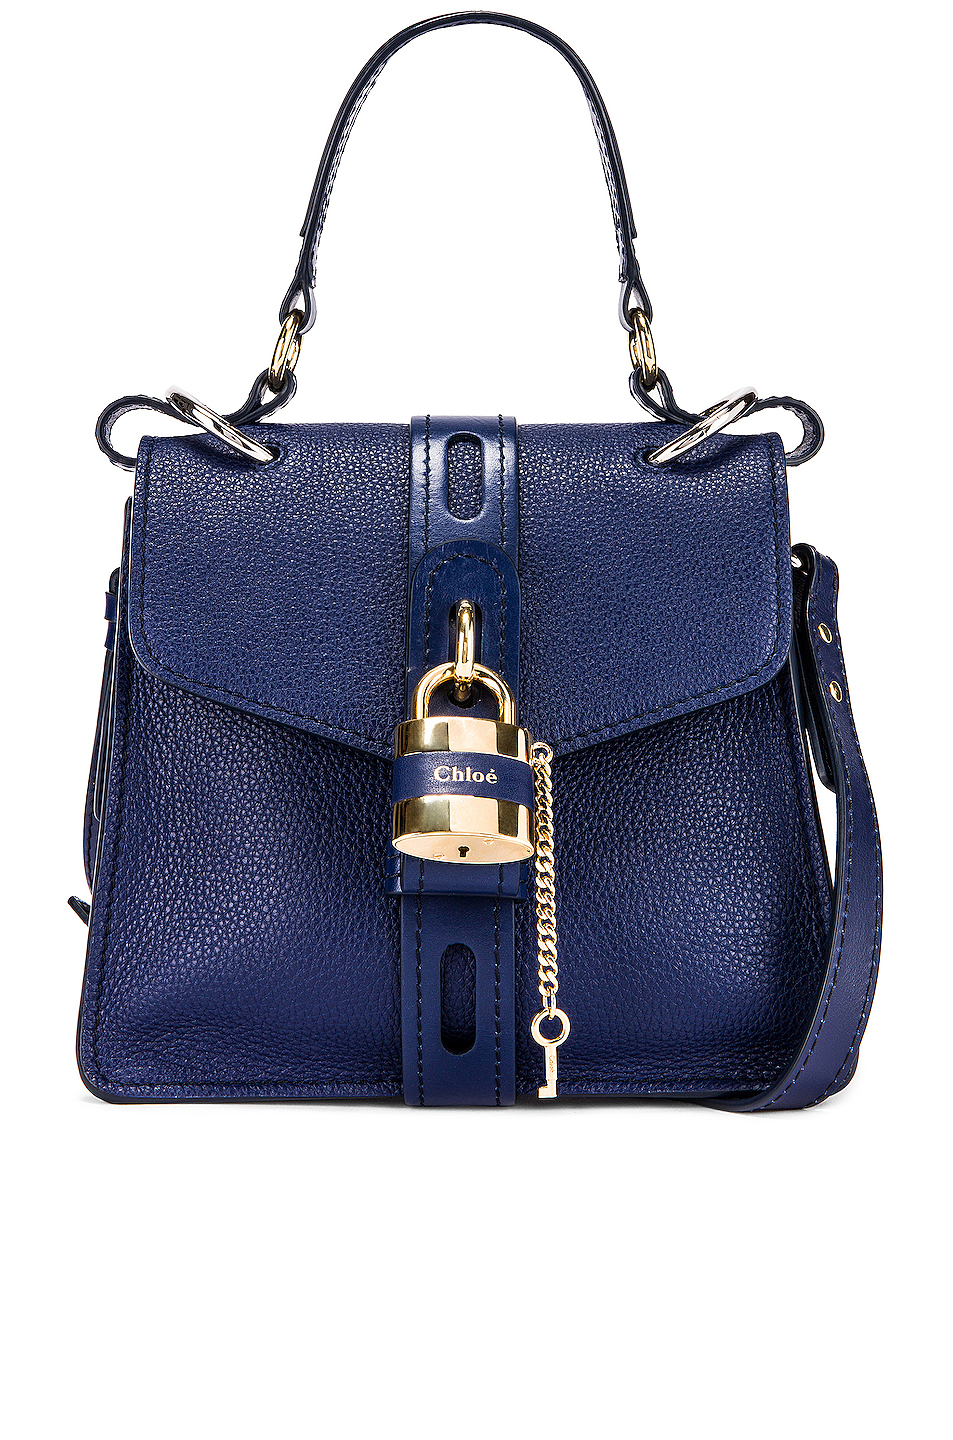 cc1d09ae Small Aby Day Bag, Chloe